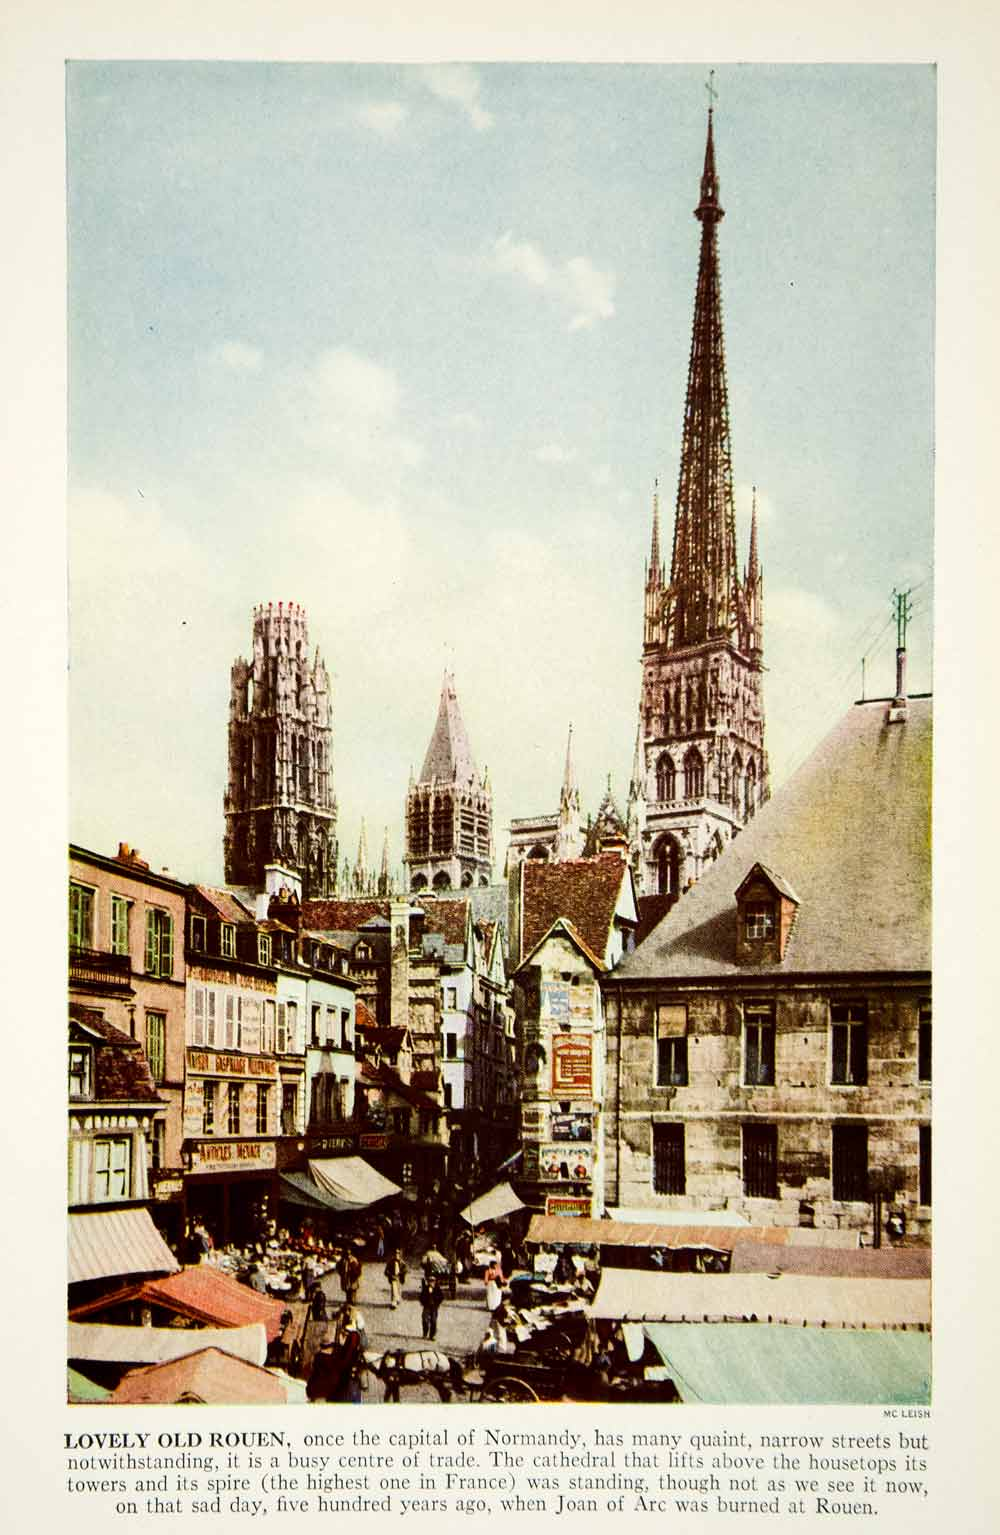 1938 Color Print Rouen France Cathedral Architecture Street View Historic XGGD4